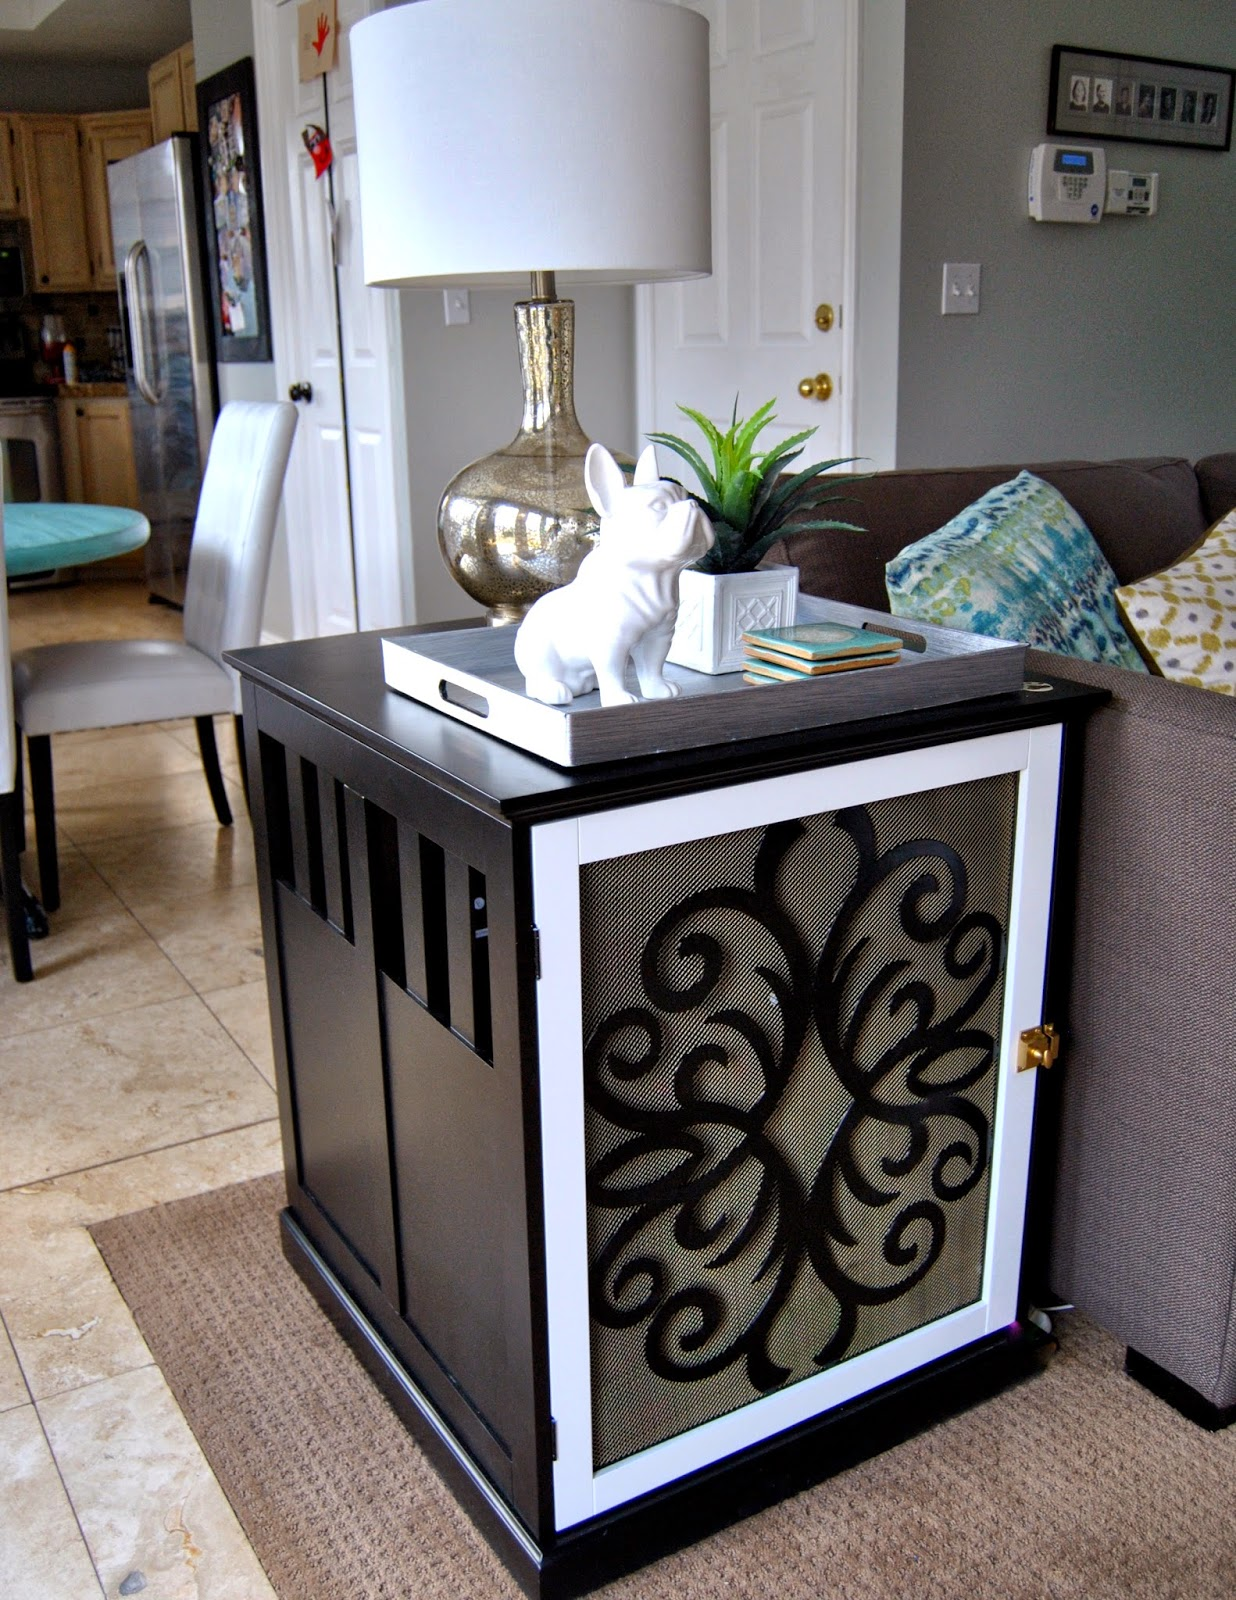 diy end tables that look stylish and unique dog crate side table oak coffee with glass top kennel designs gray wood white outdoor dining lakehurst wooden garden oval indoor house